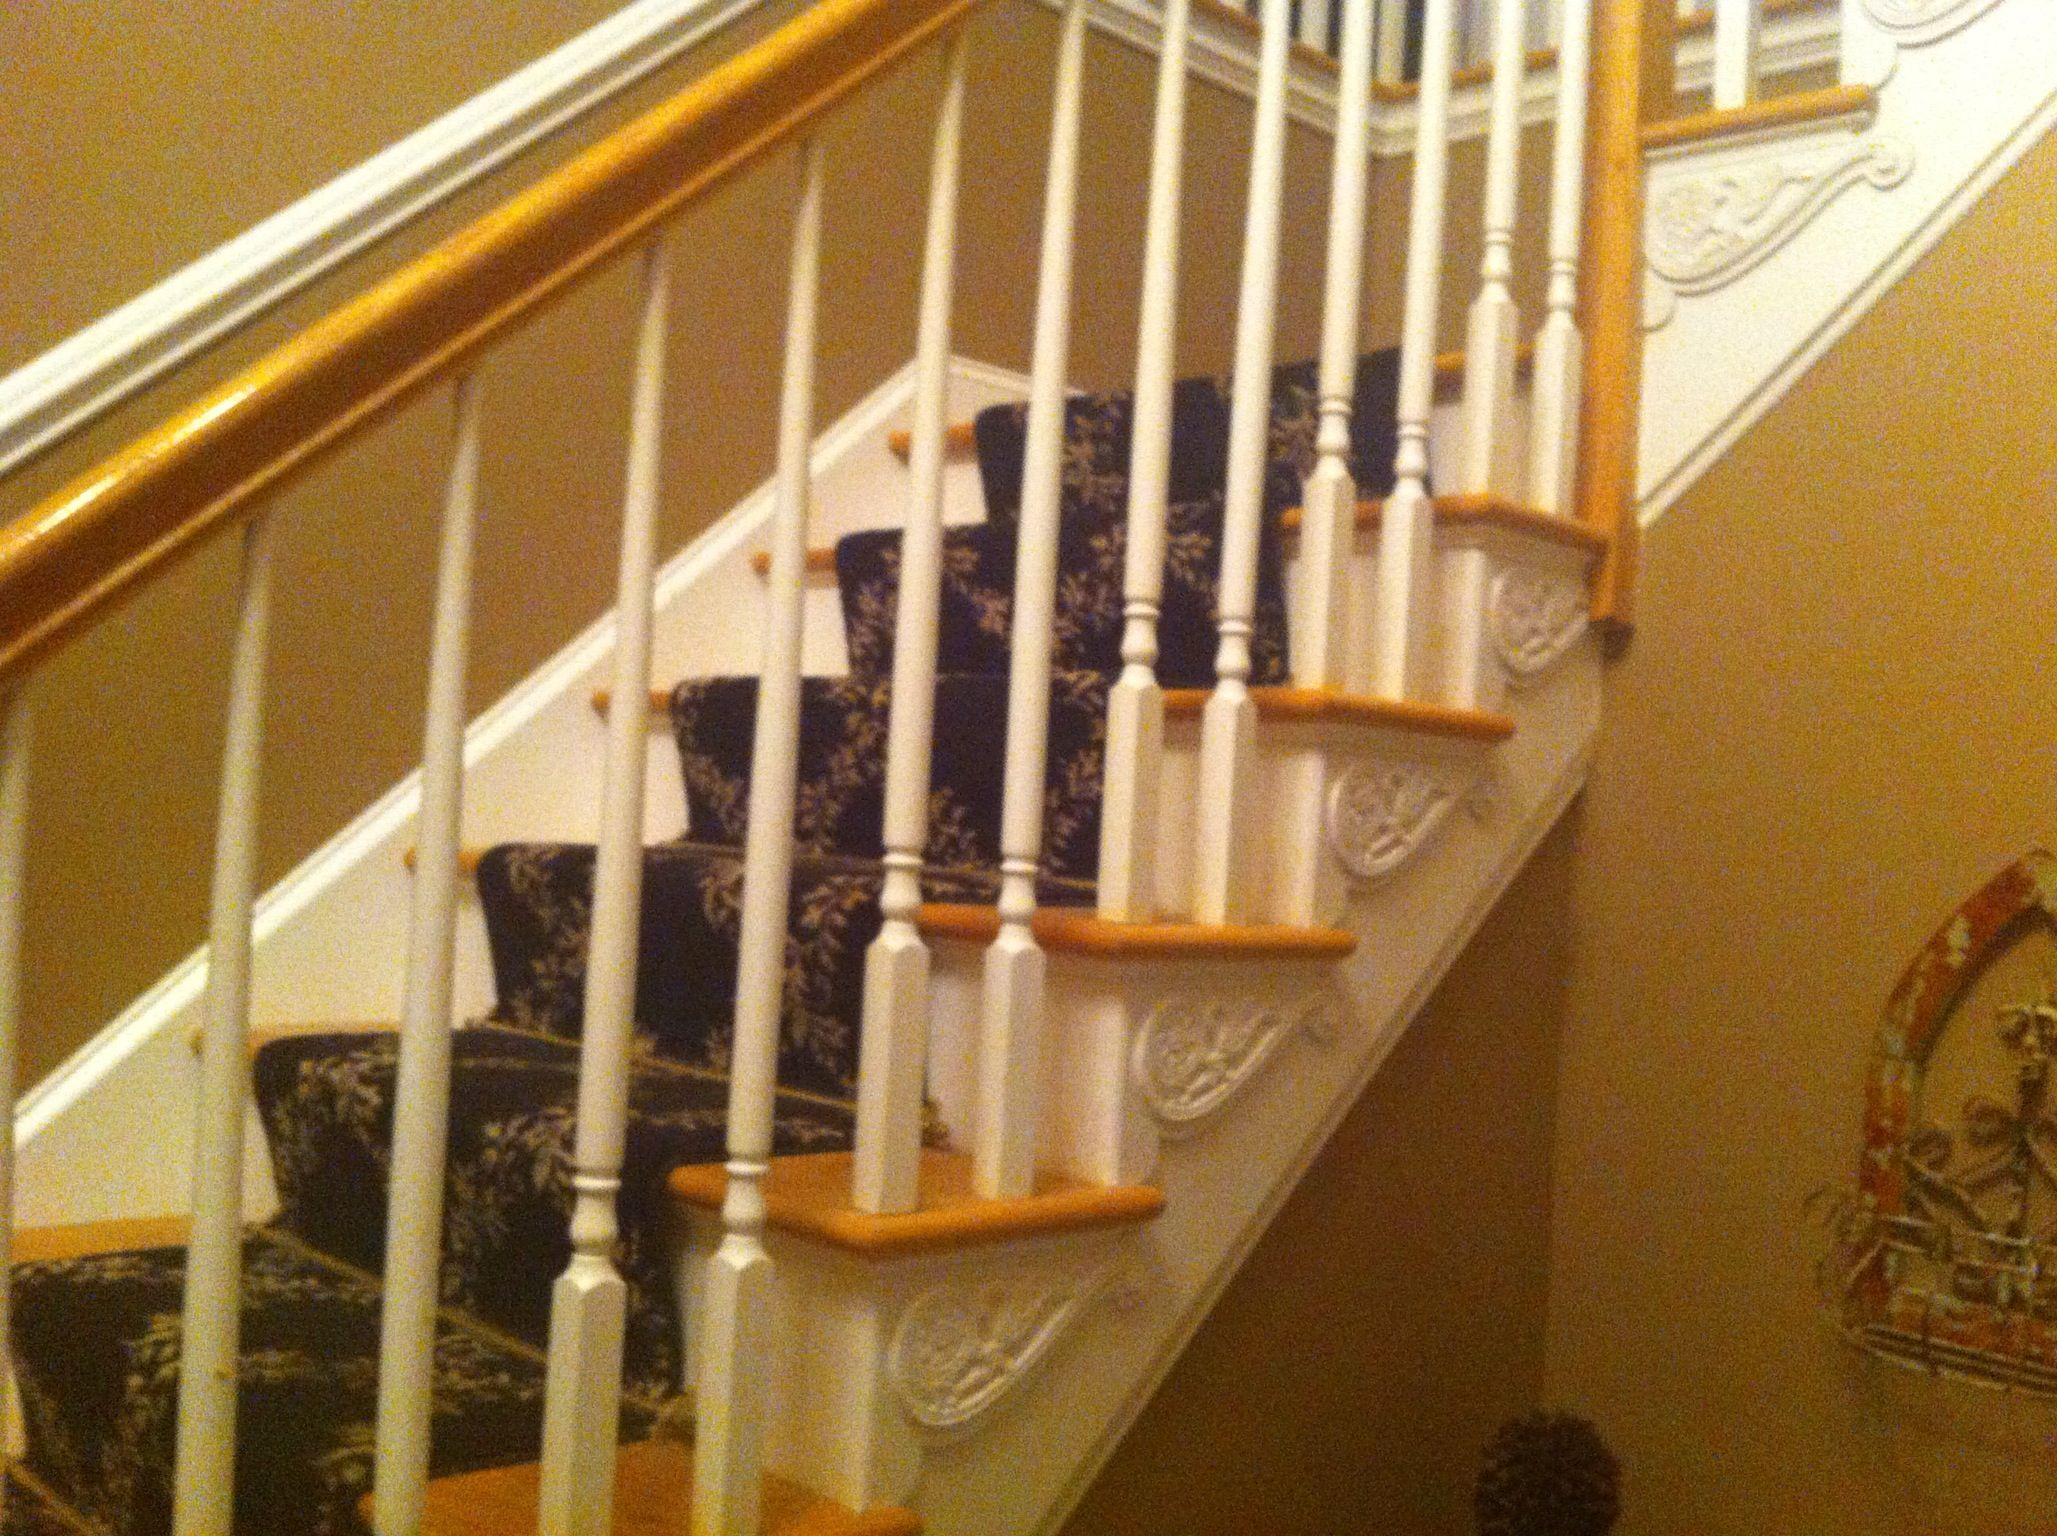 after refinishing the steps installed a carpet runner and